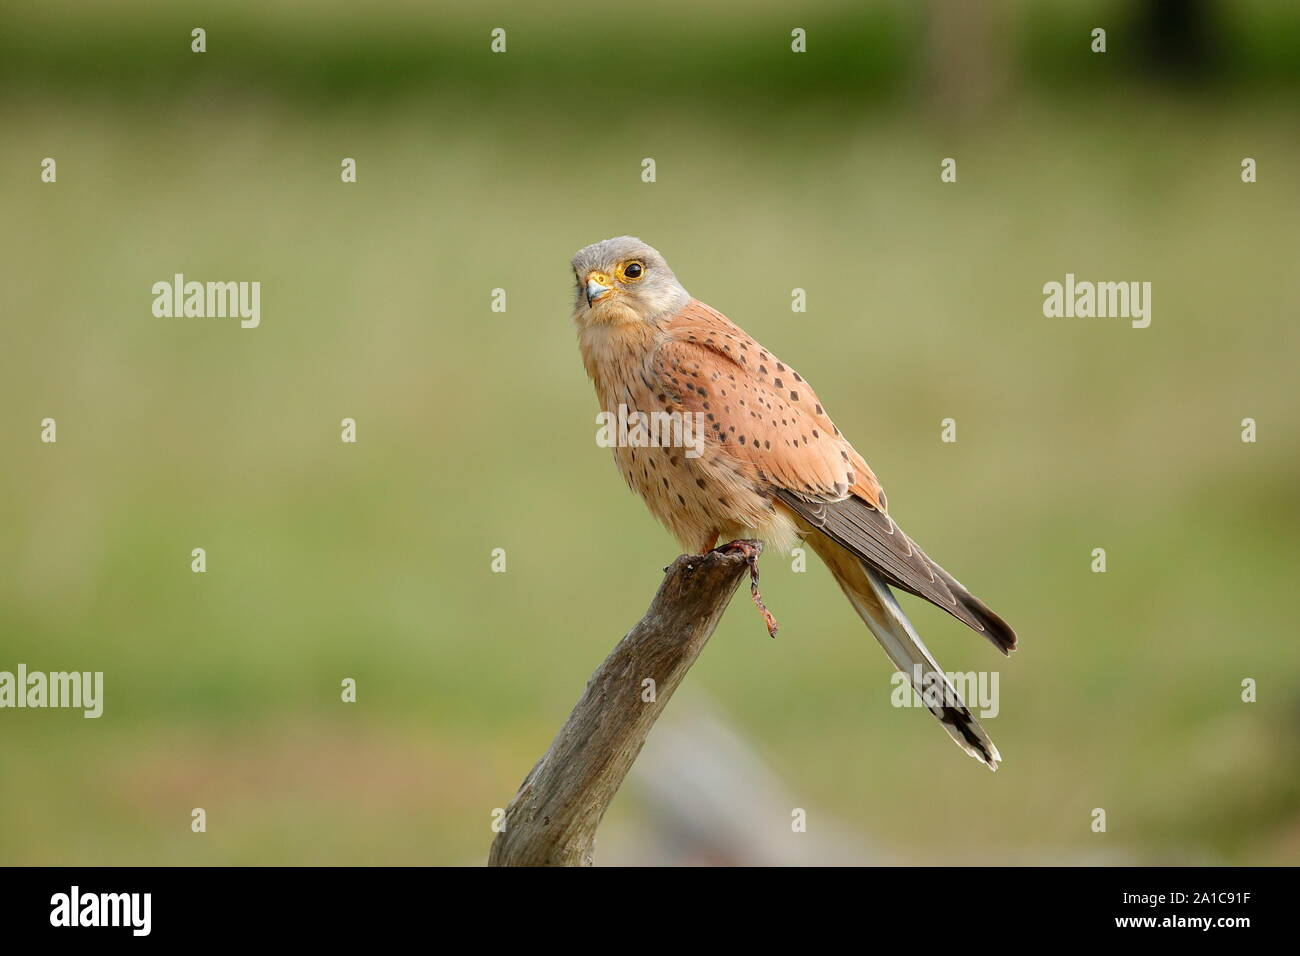 The Common Kestrel Is A Bird Of Prey Species Belonging To The Kestrel Group Of The Falcon Family Falconidae It Is Also Known As The European Kestrel Stock Photo Alamy